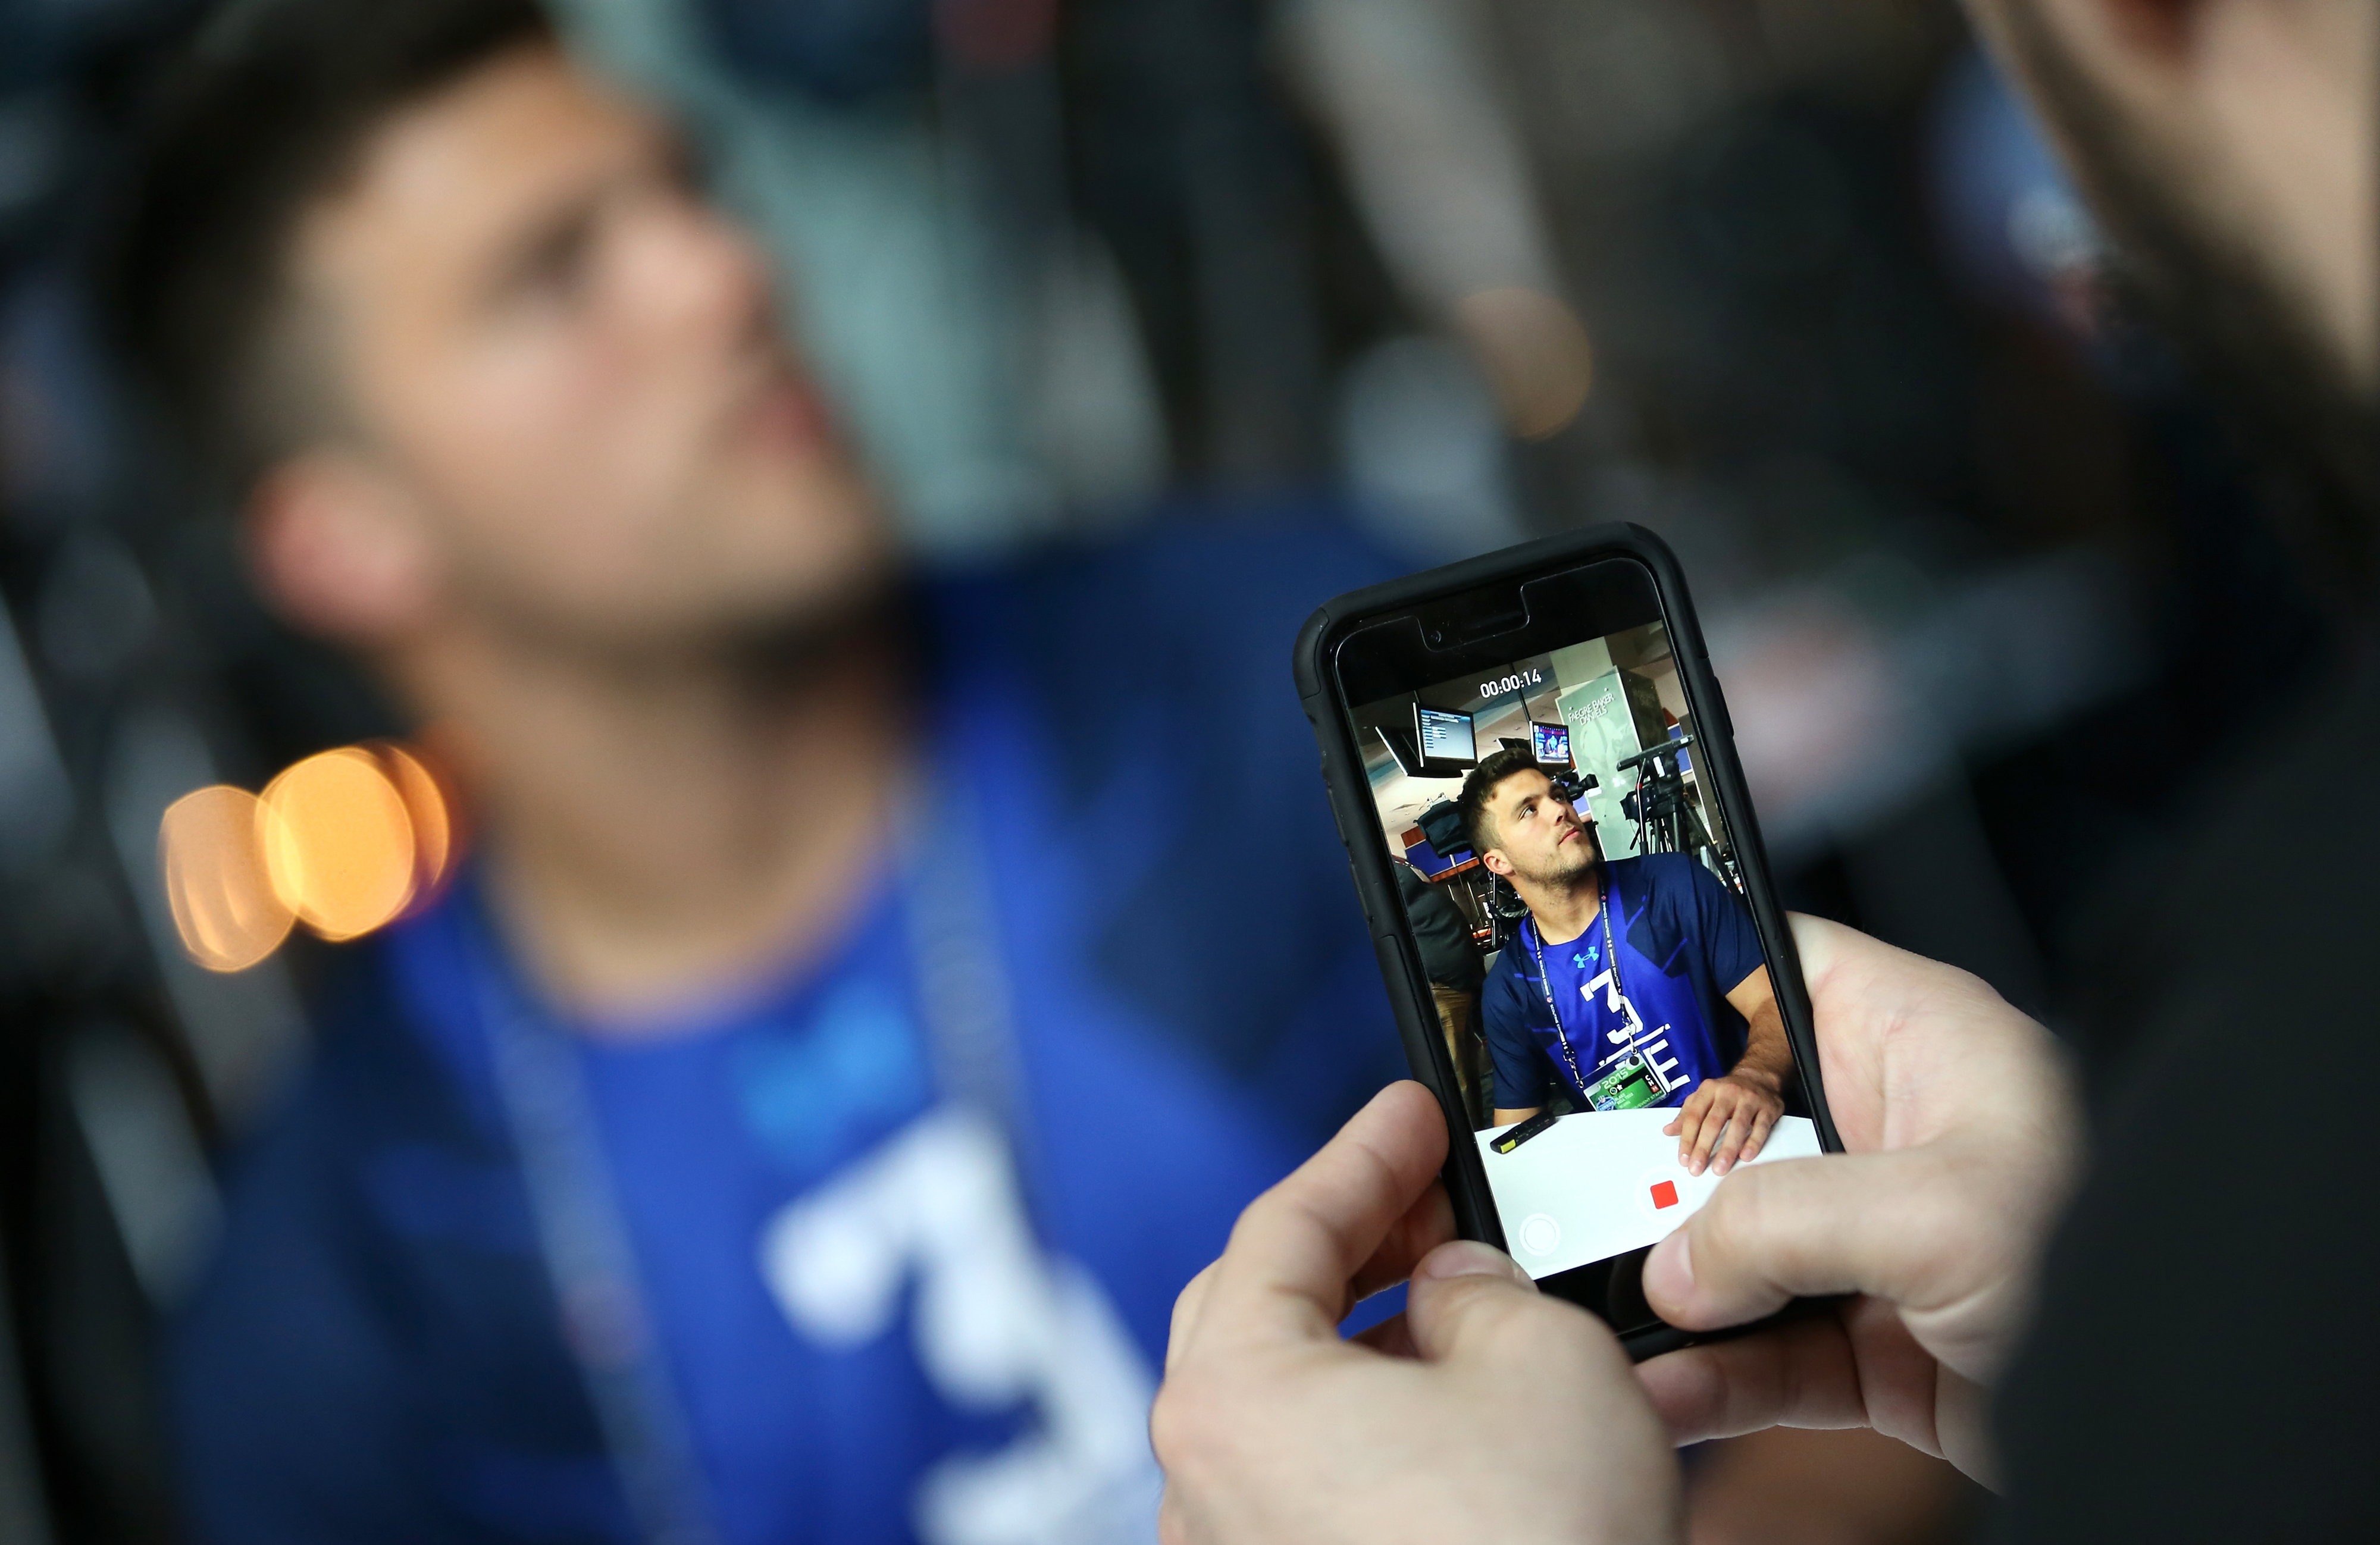 Oklahoma tight end Blake Bell speaks with reporters during the 2015 NFL Scouting Combine at Lucas Oil Stadium on Wednesday, February 18, 2015 in Indianapolis, IN. (Johnny Vy/NFL)